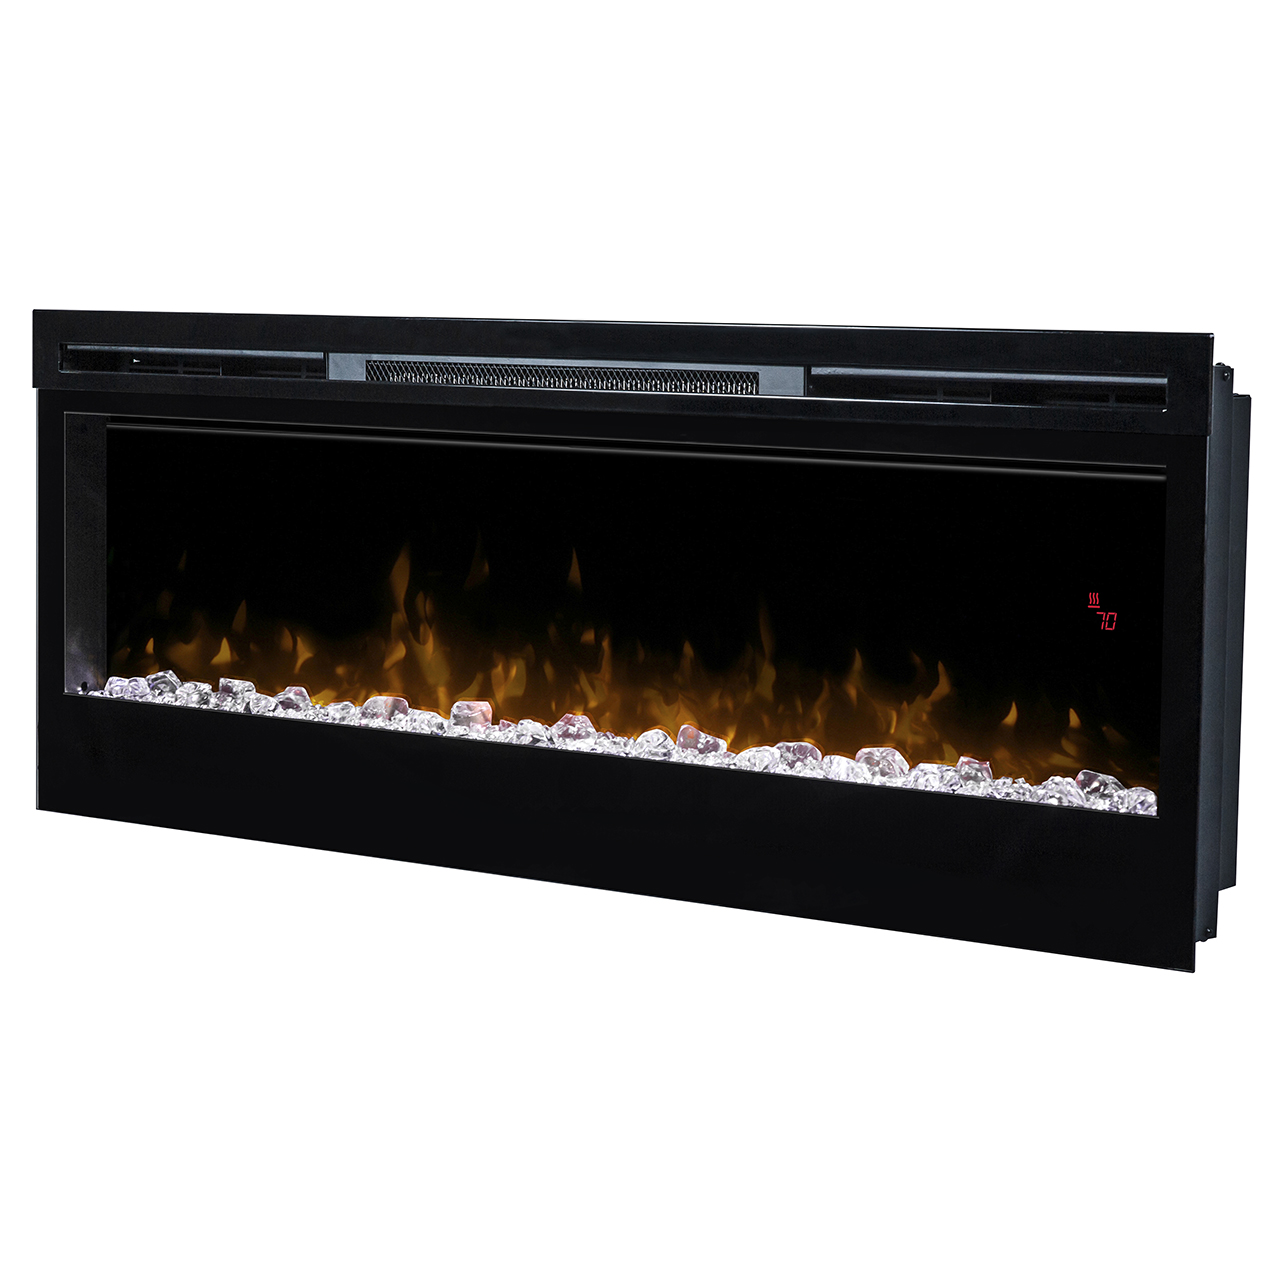 blf prism series electric fireplace from dimplexportablefireplace com